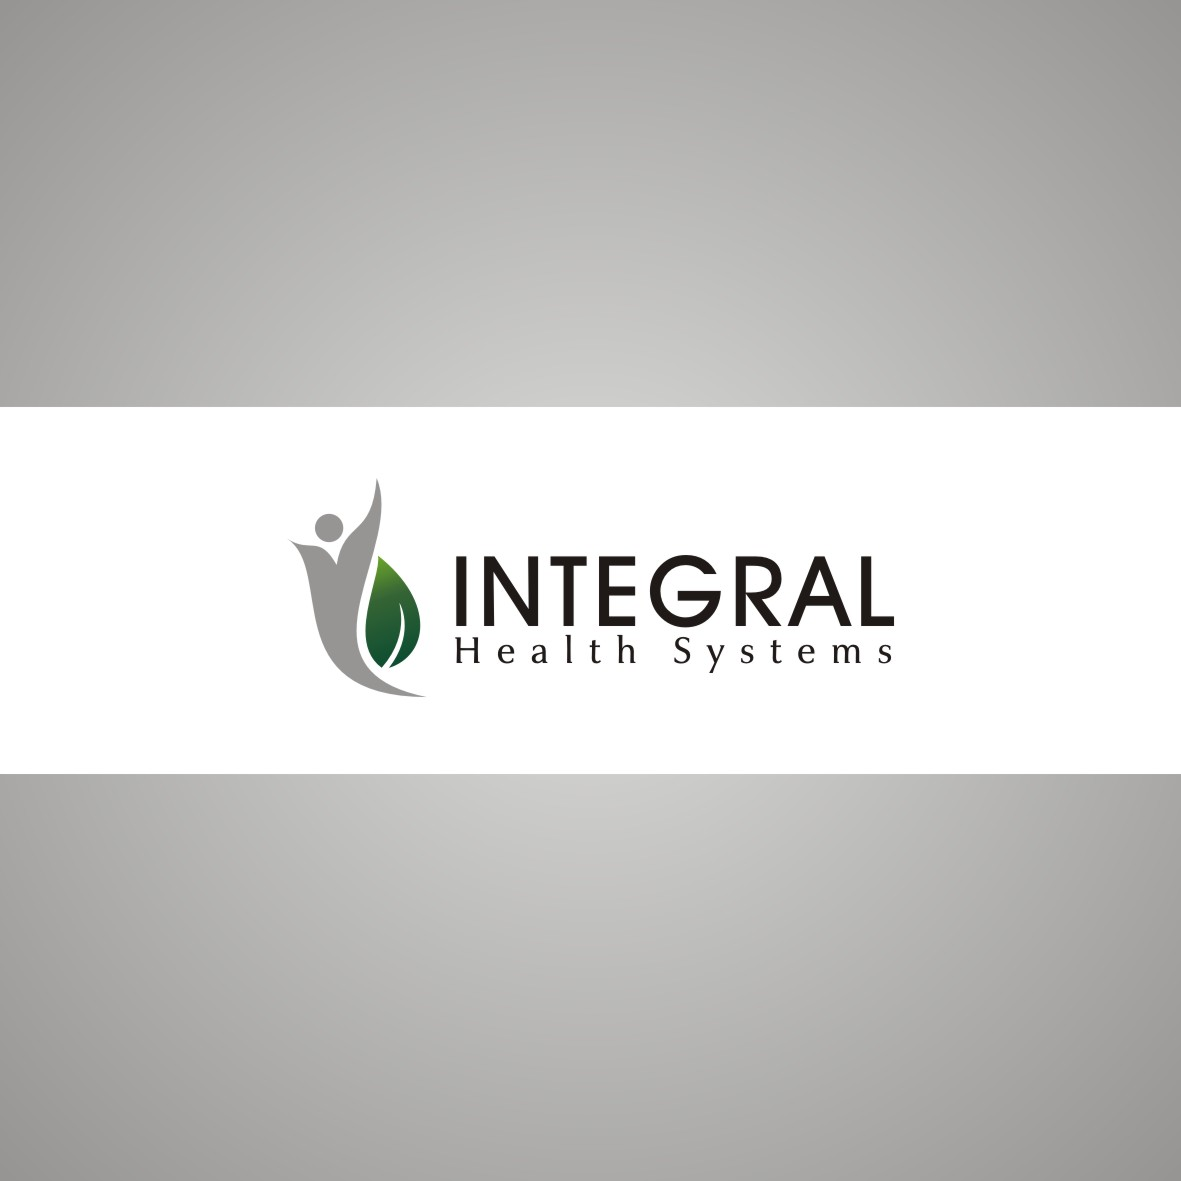 Logo Design by arteo_design - Entry No. 87 in the Logo Design Contest Unique Logo Design Wanted for Integral Health Systems.